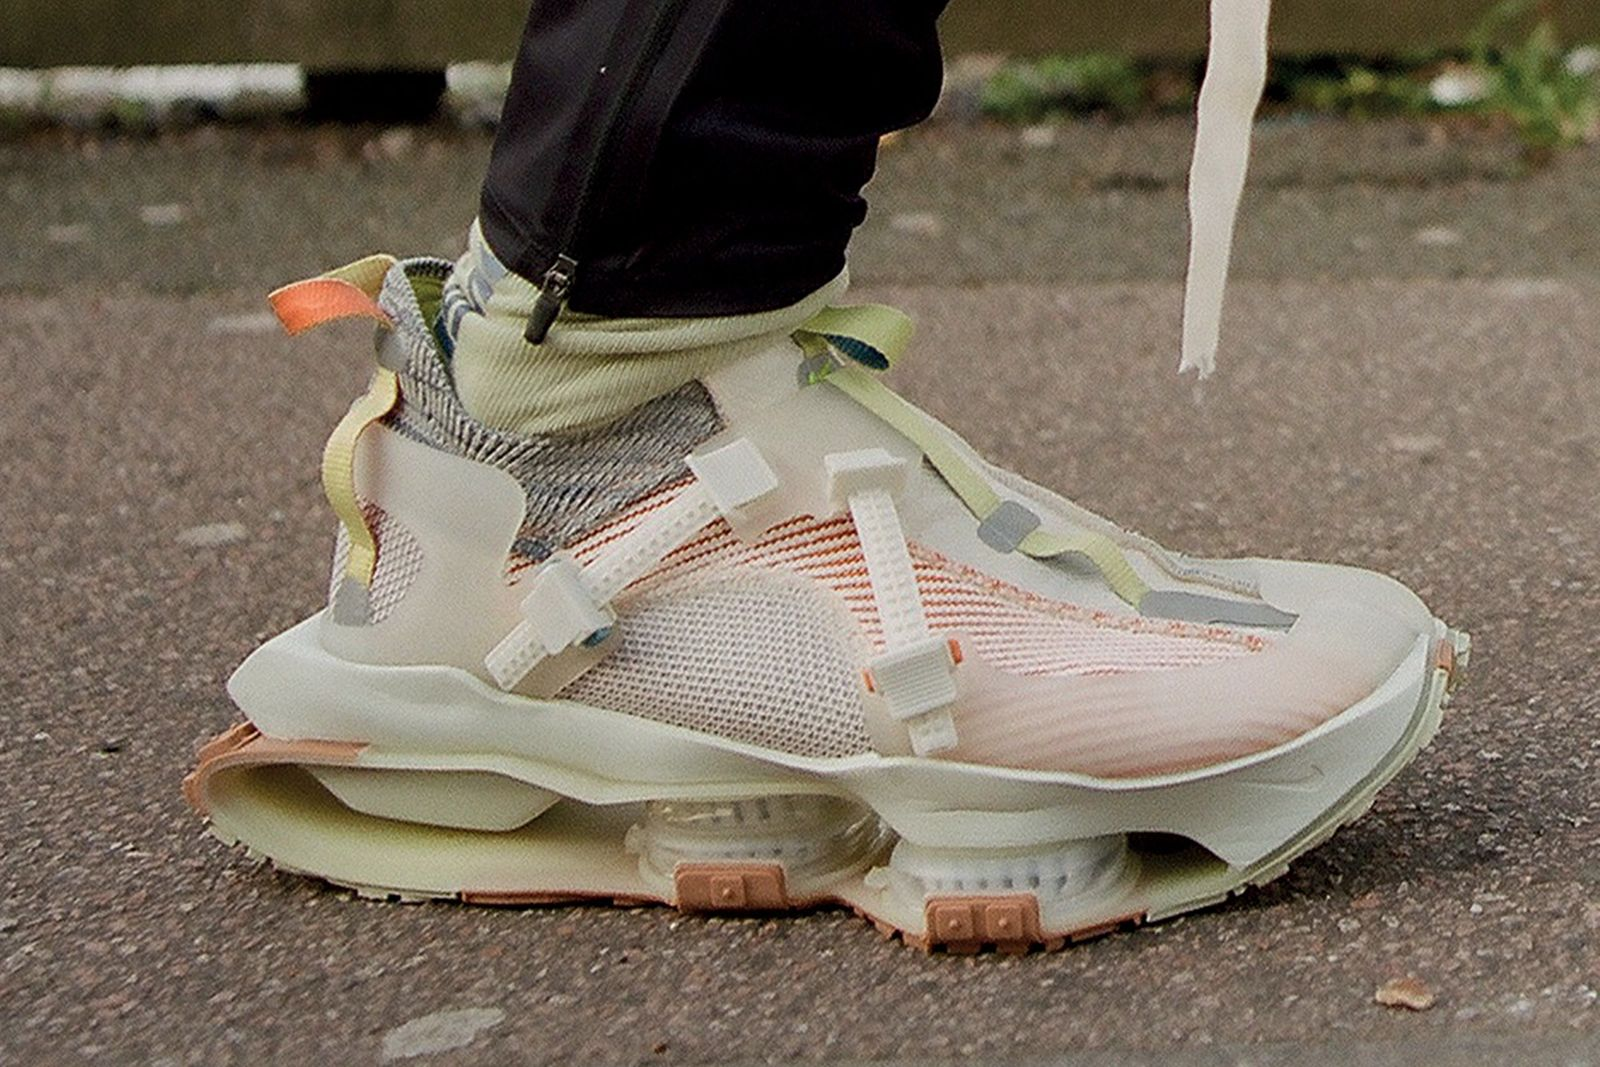 Nike ISPA Road Warrior on foot shot